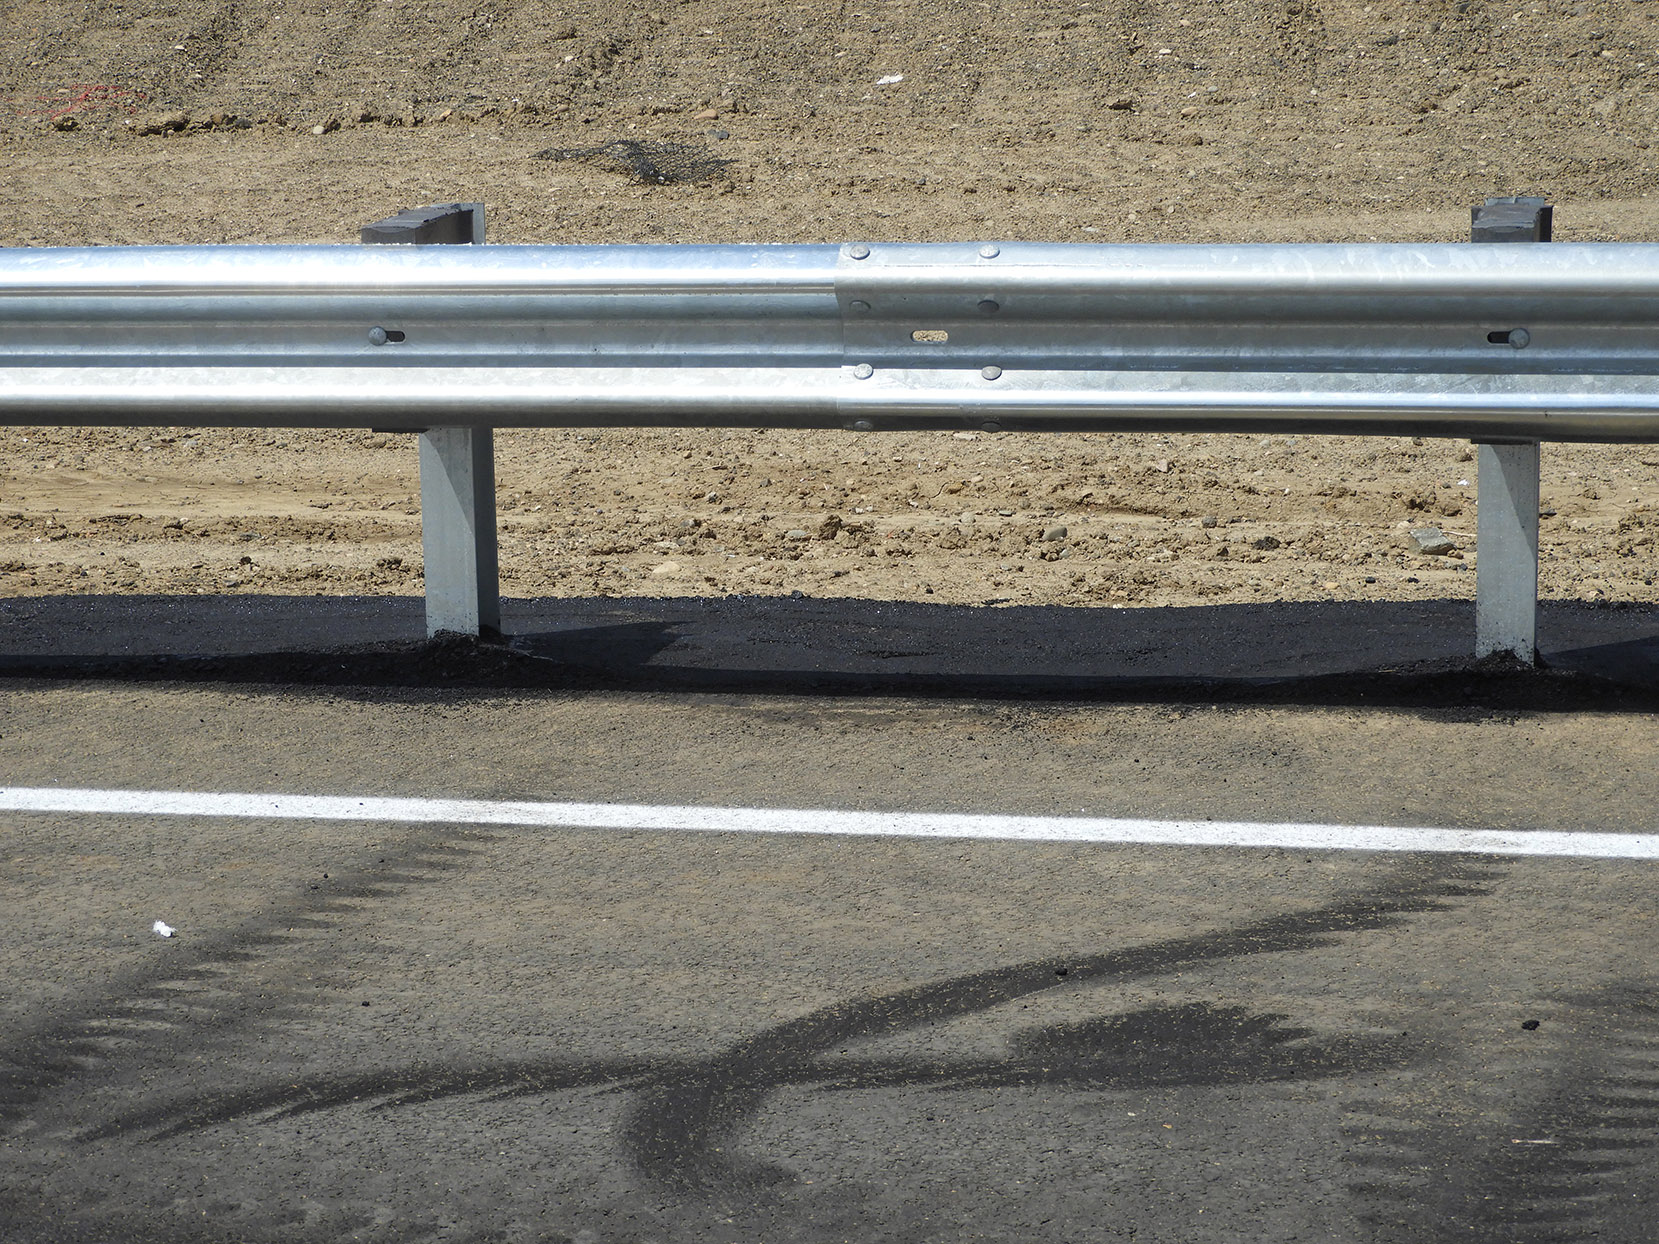 Asphalt around guardrail posts, south of 144th Avenue on the west side of southbound I-25